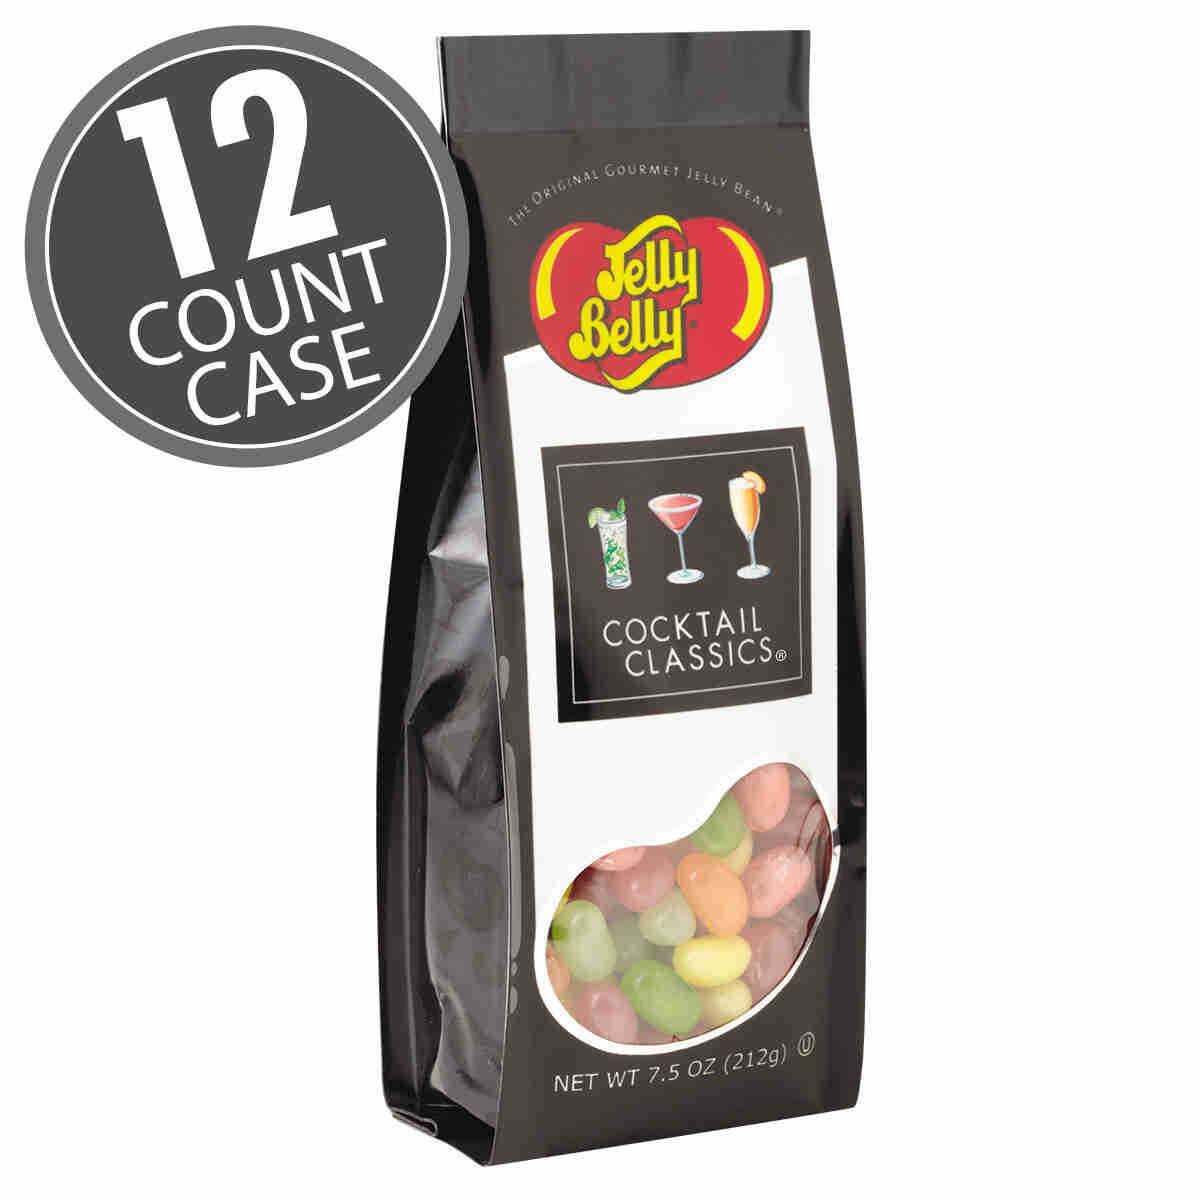 Cocktail Classics® Jelly Beans - 7.5 oz Gift Bag - 12 Count Case